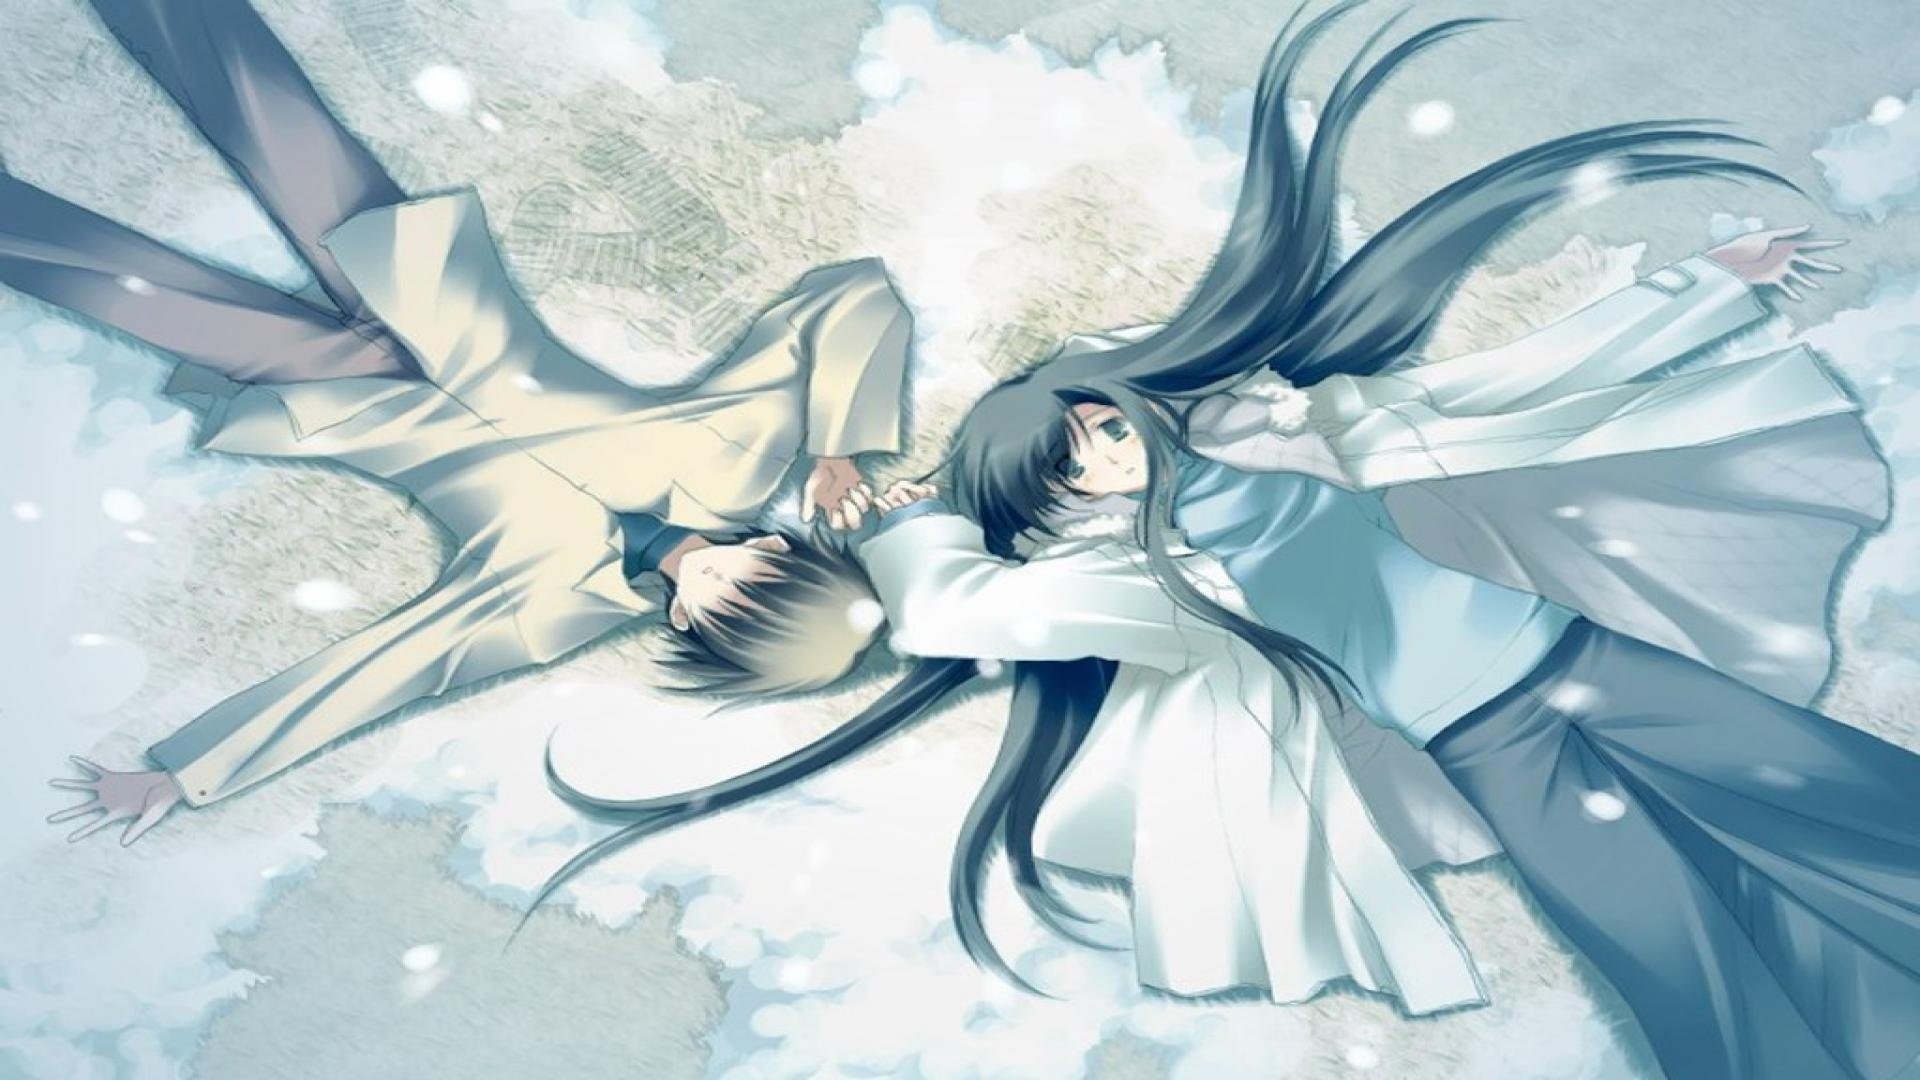 Sweet Anime Love Wallpaper Desktop : Anime couple Wallpaper (74+ images)